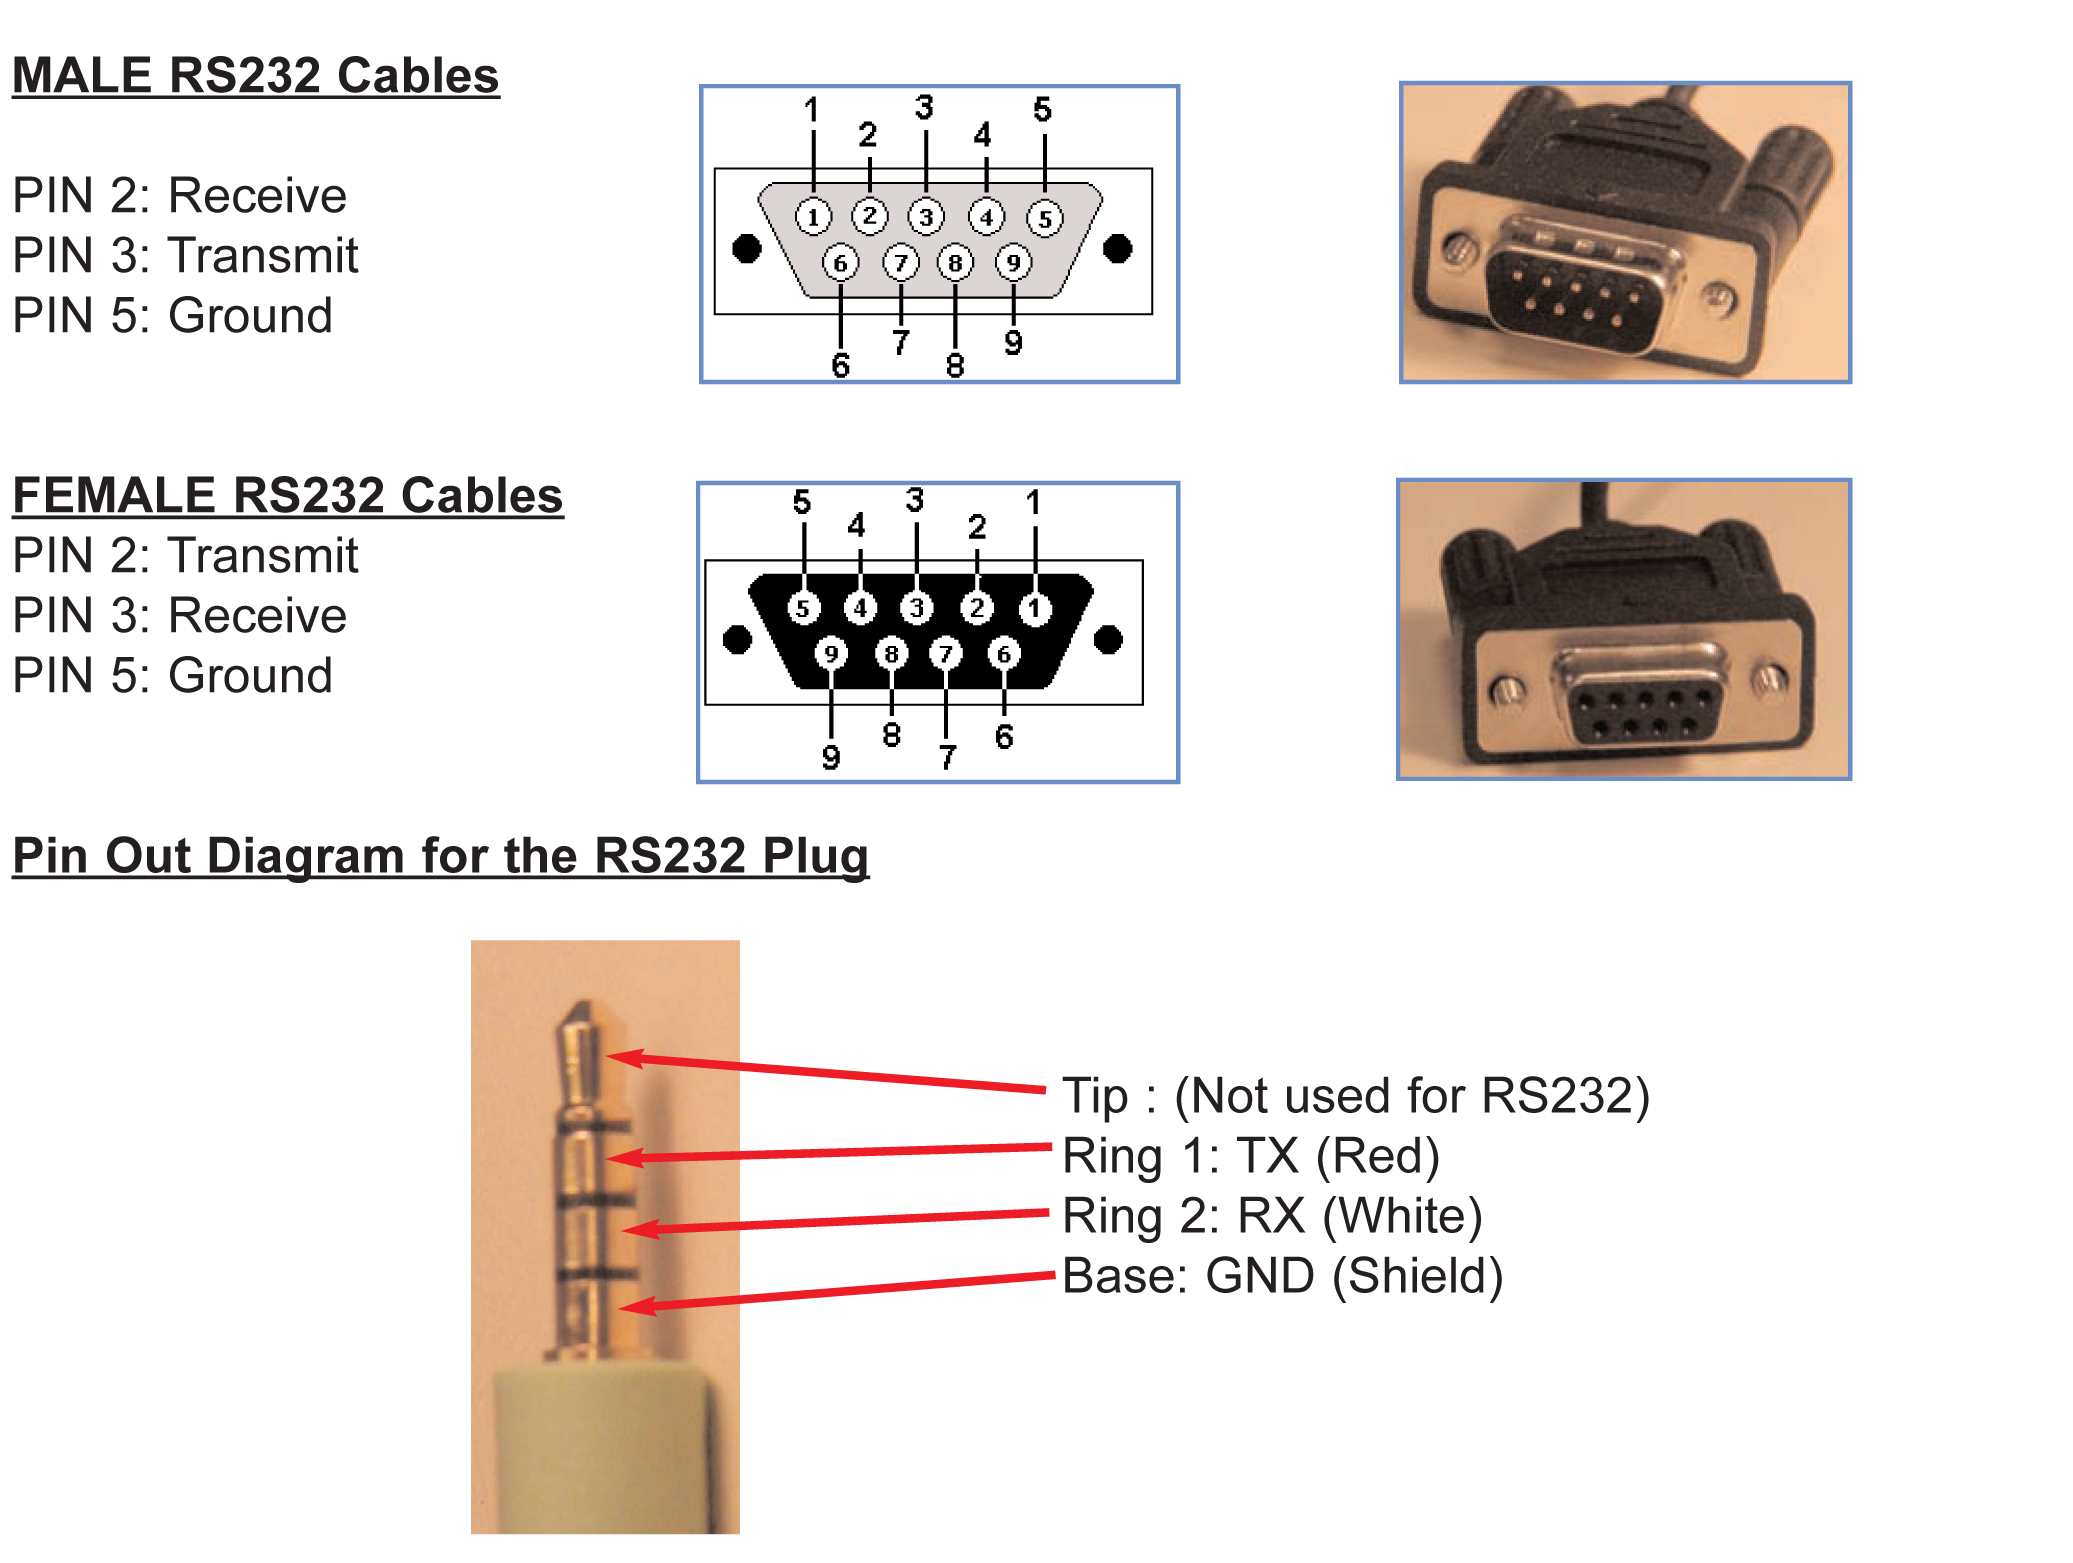 Rs 232 Sensor Ir Pinout Information Urc Knowledge Base Faq Null Modem Cable Wiring Diagram Are Pre Wired To Perform The Swap For You If Make Your Own Sure Check Component Manufacturers Specifications Tx